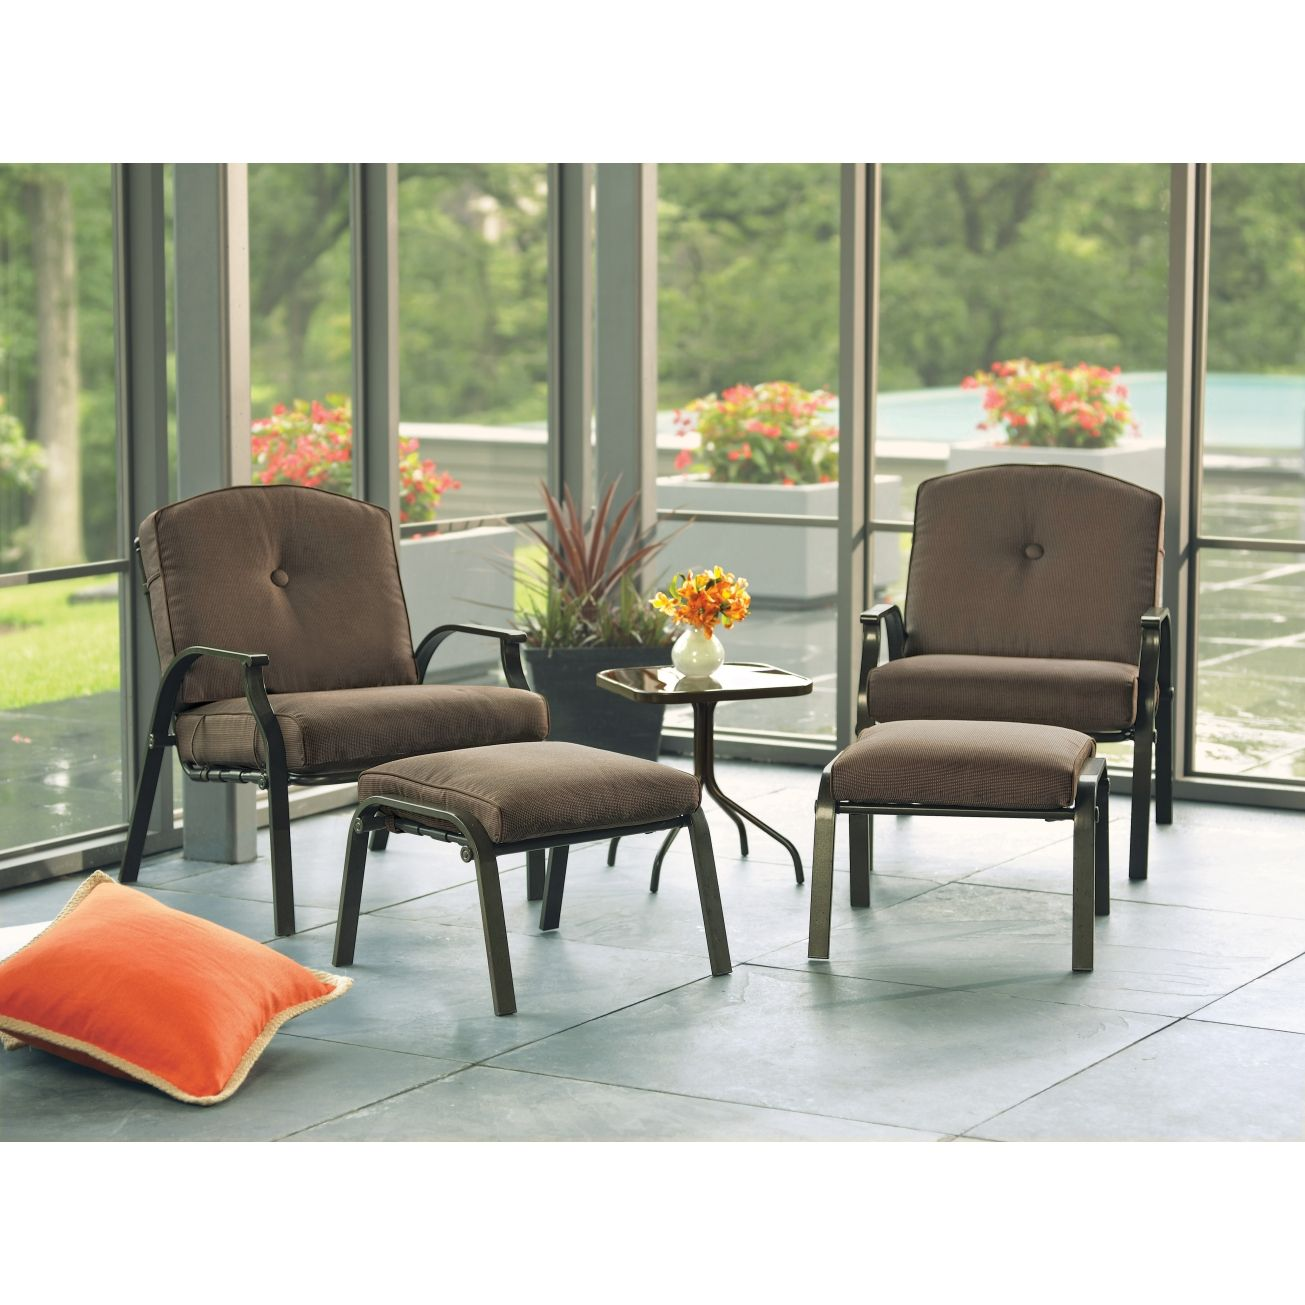 Superb Living Accents 5 Piece Aspen Conversation Set   Patio Collections U0026 Seating  Sets   Ace Hardware